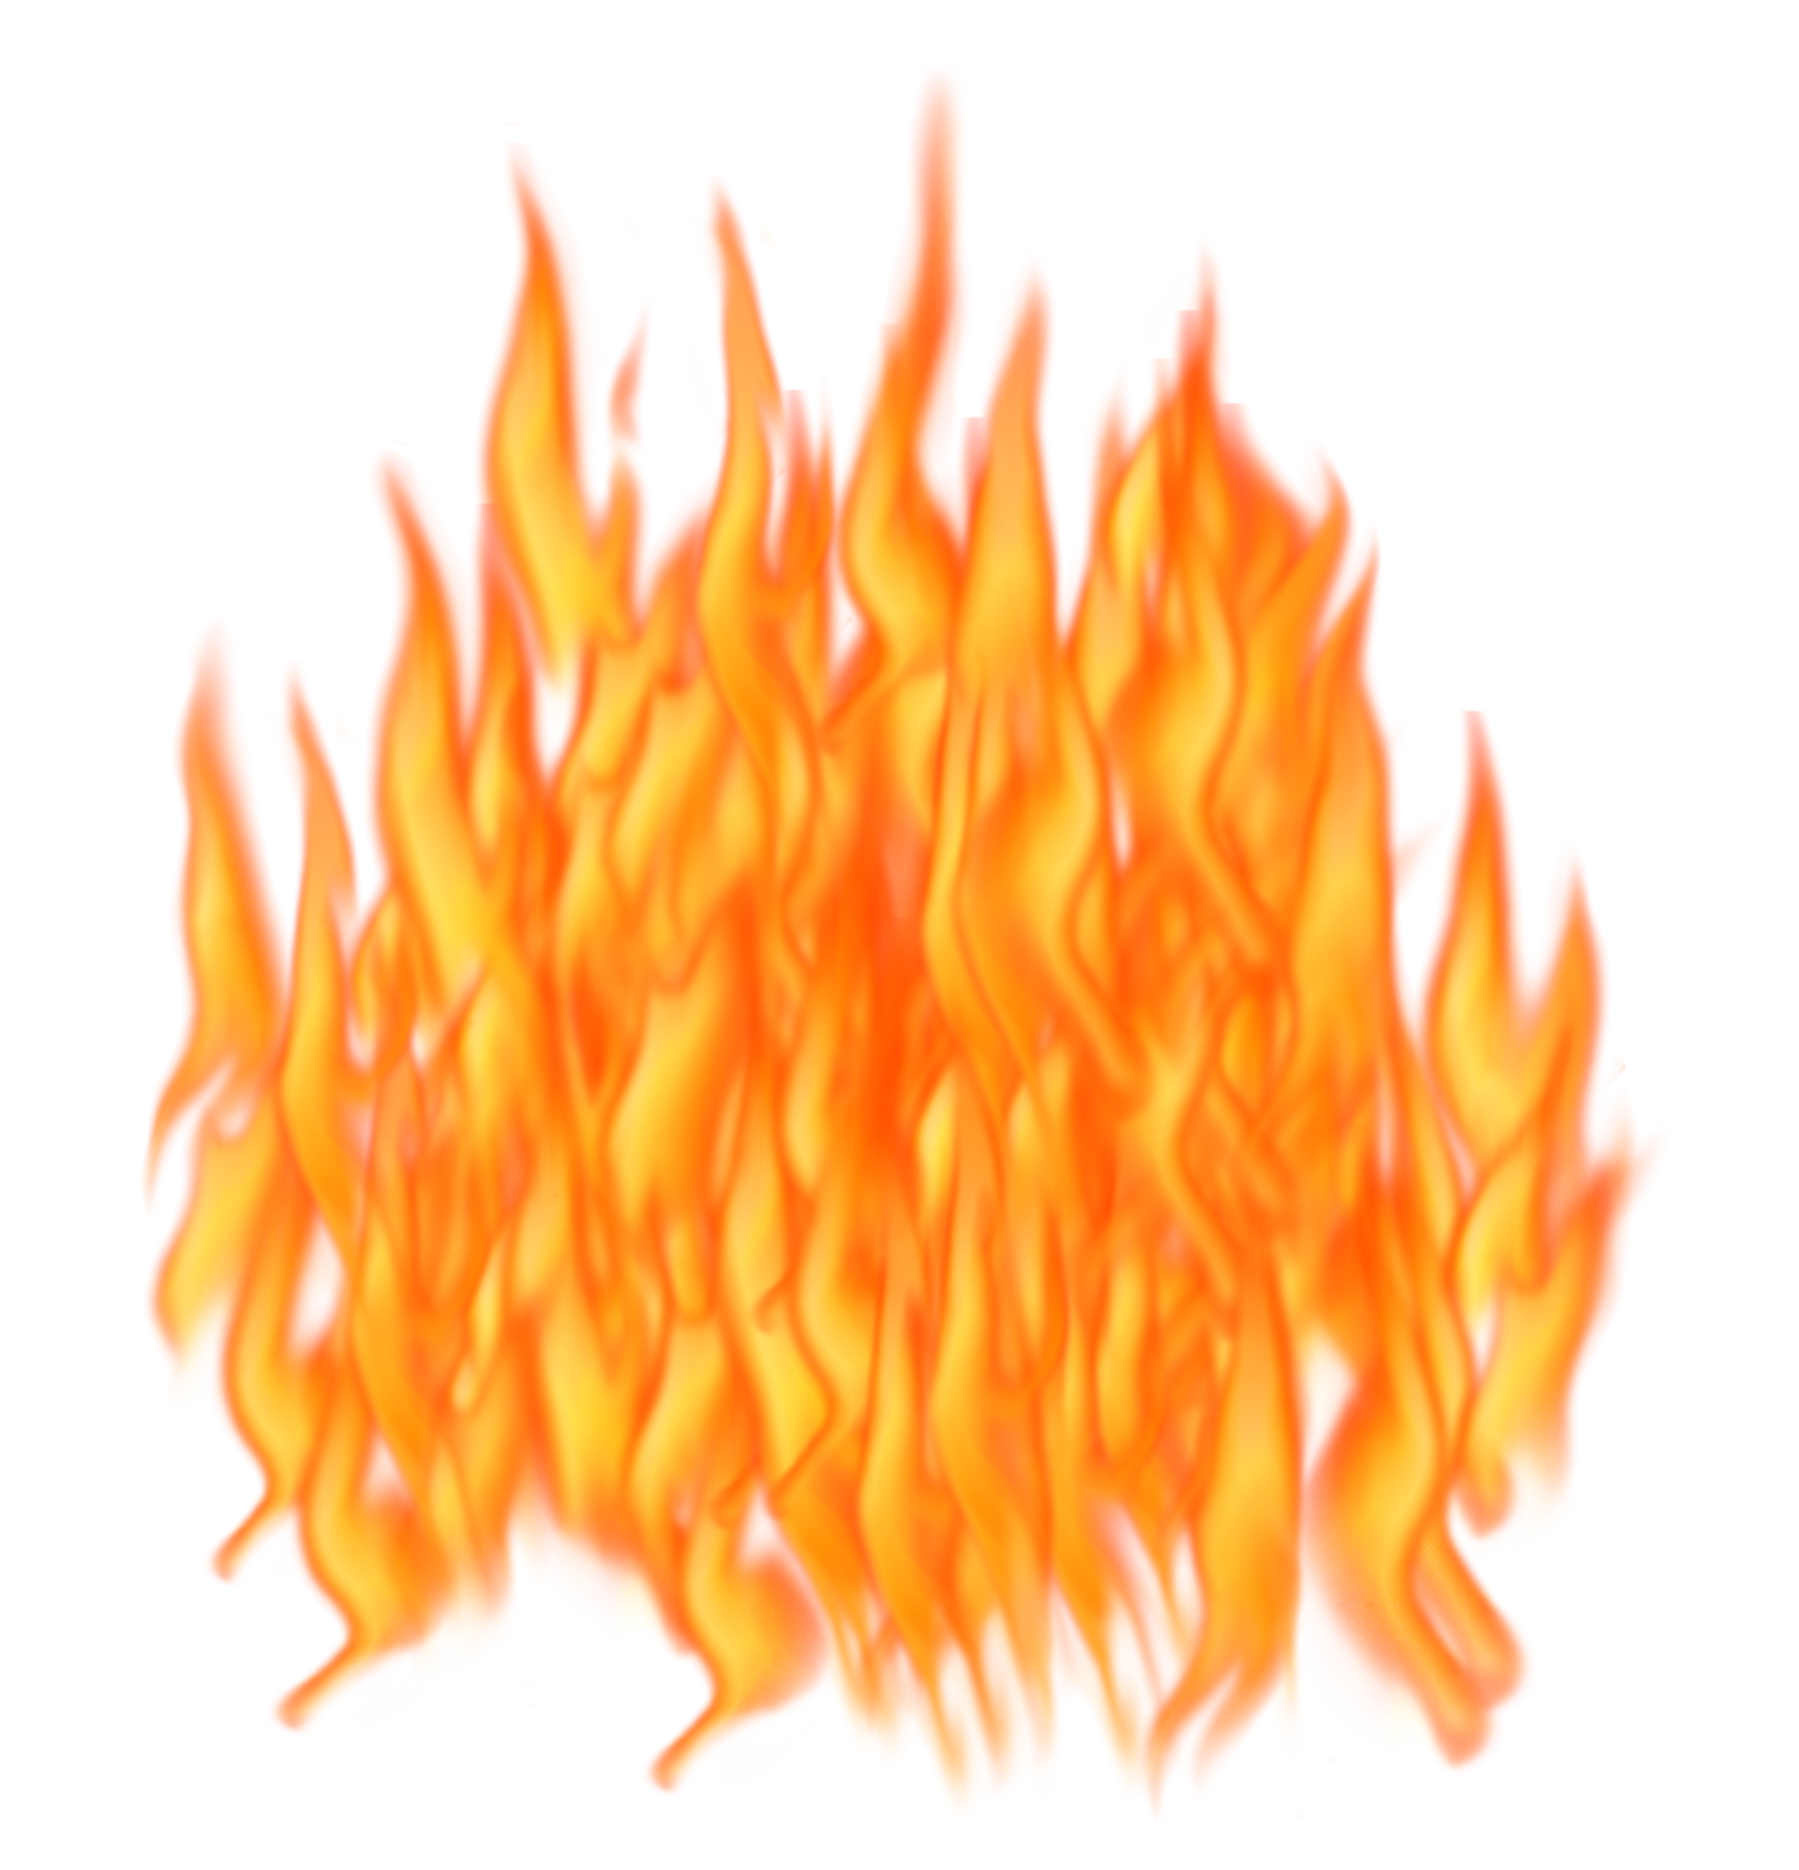 Cartoon flames png. Clipart image gallery yopriceville